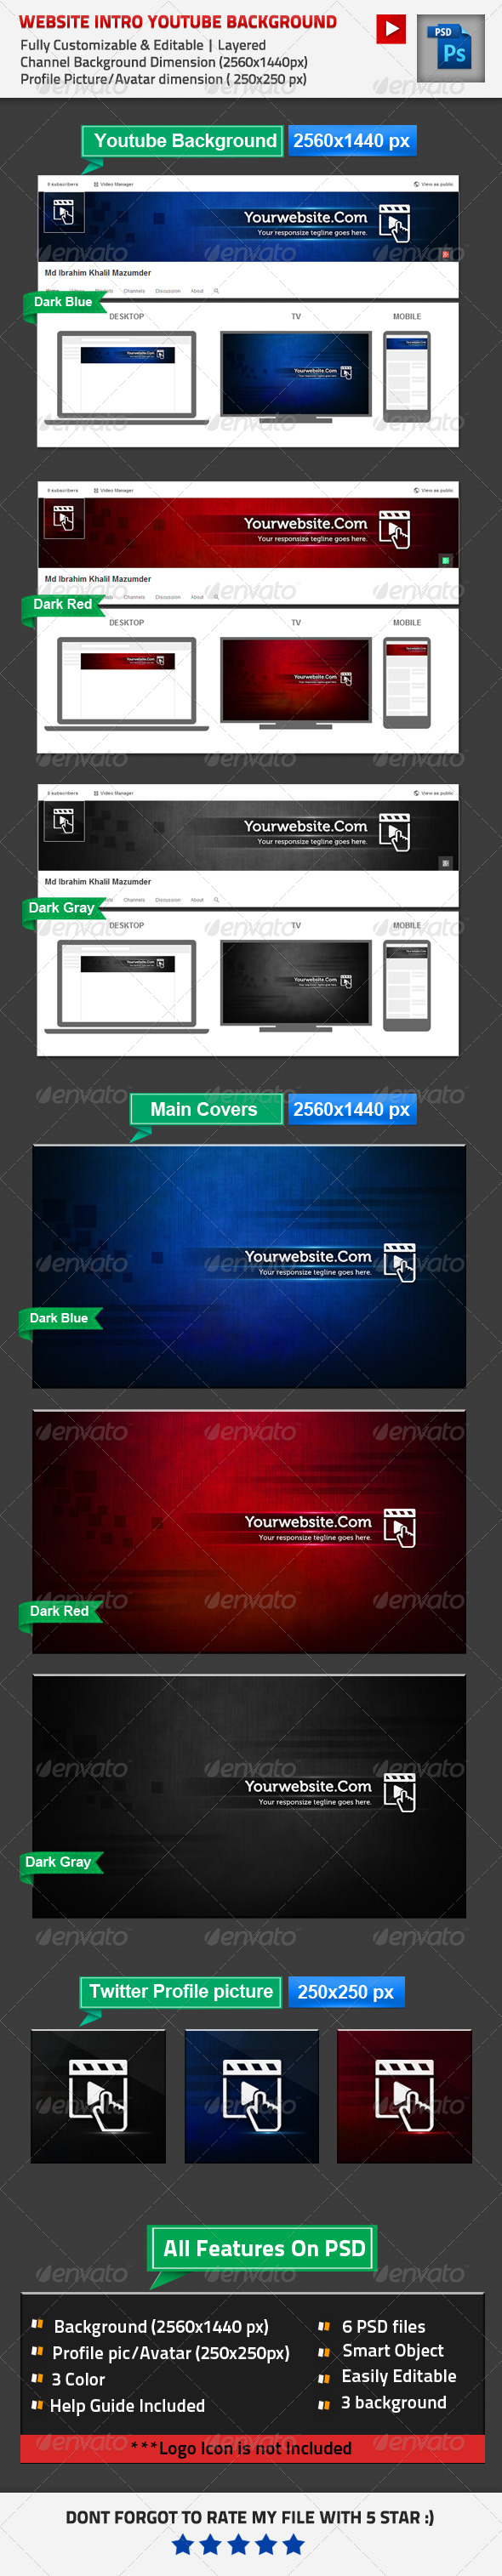 Website Intro Youtube Channel Background Template PSD. Download here ...